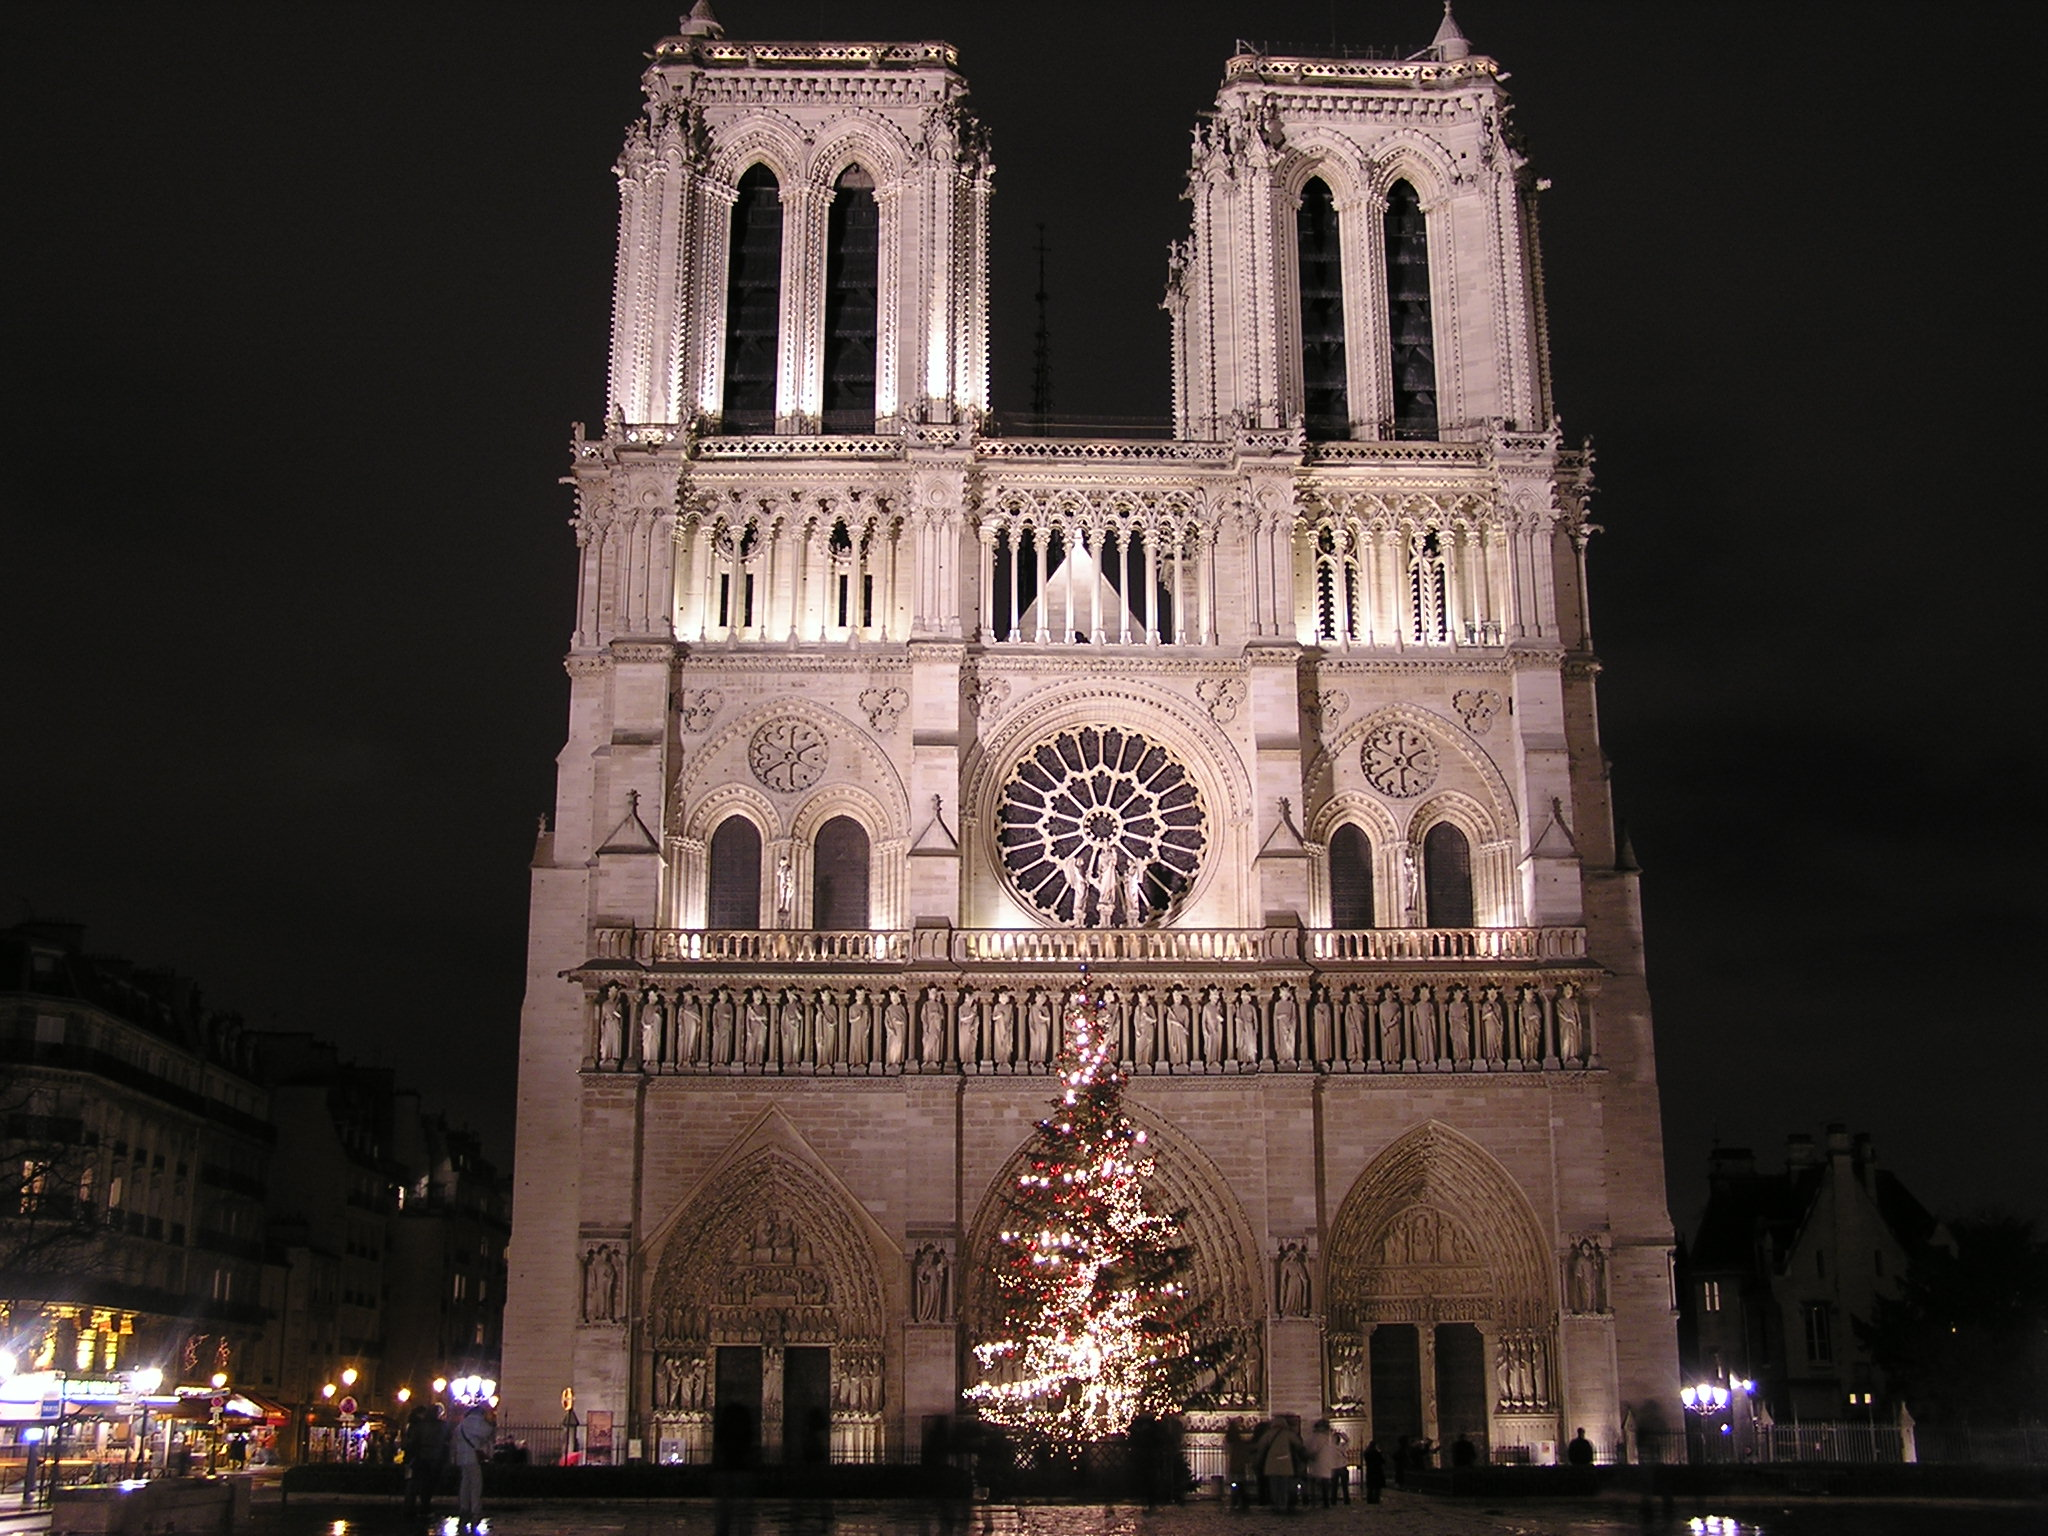 File:Notre Dame Night.JPG - Wikipedia